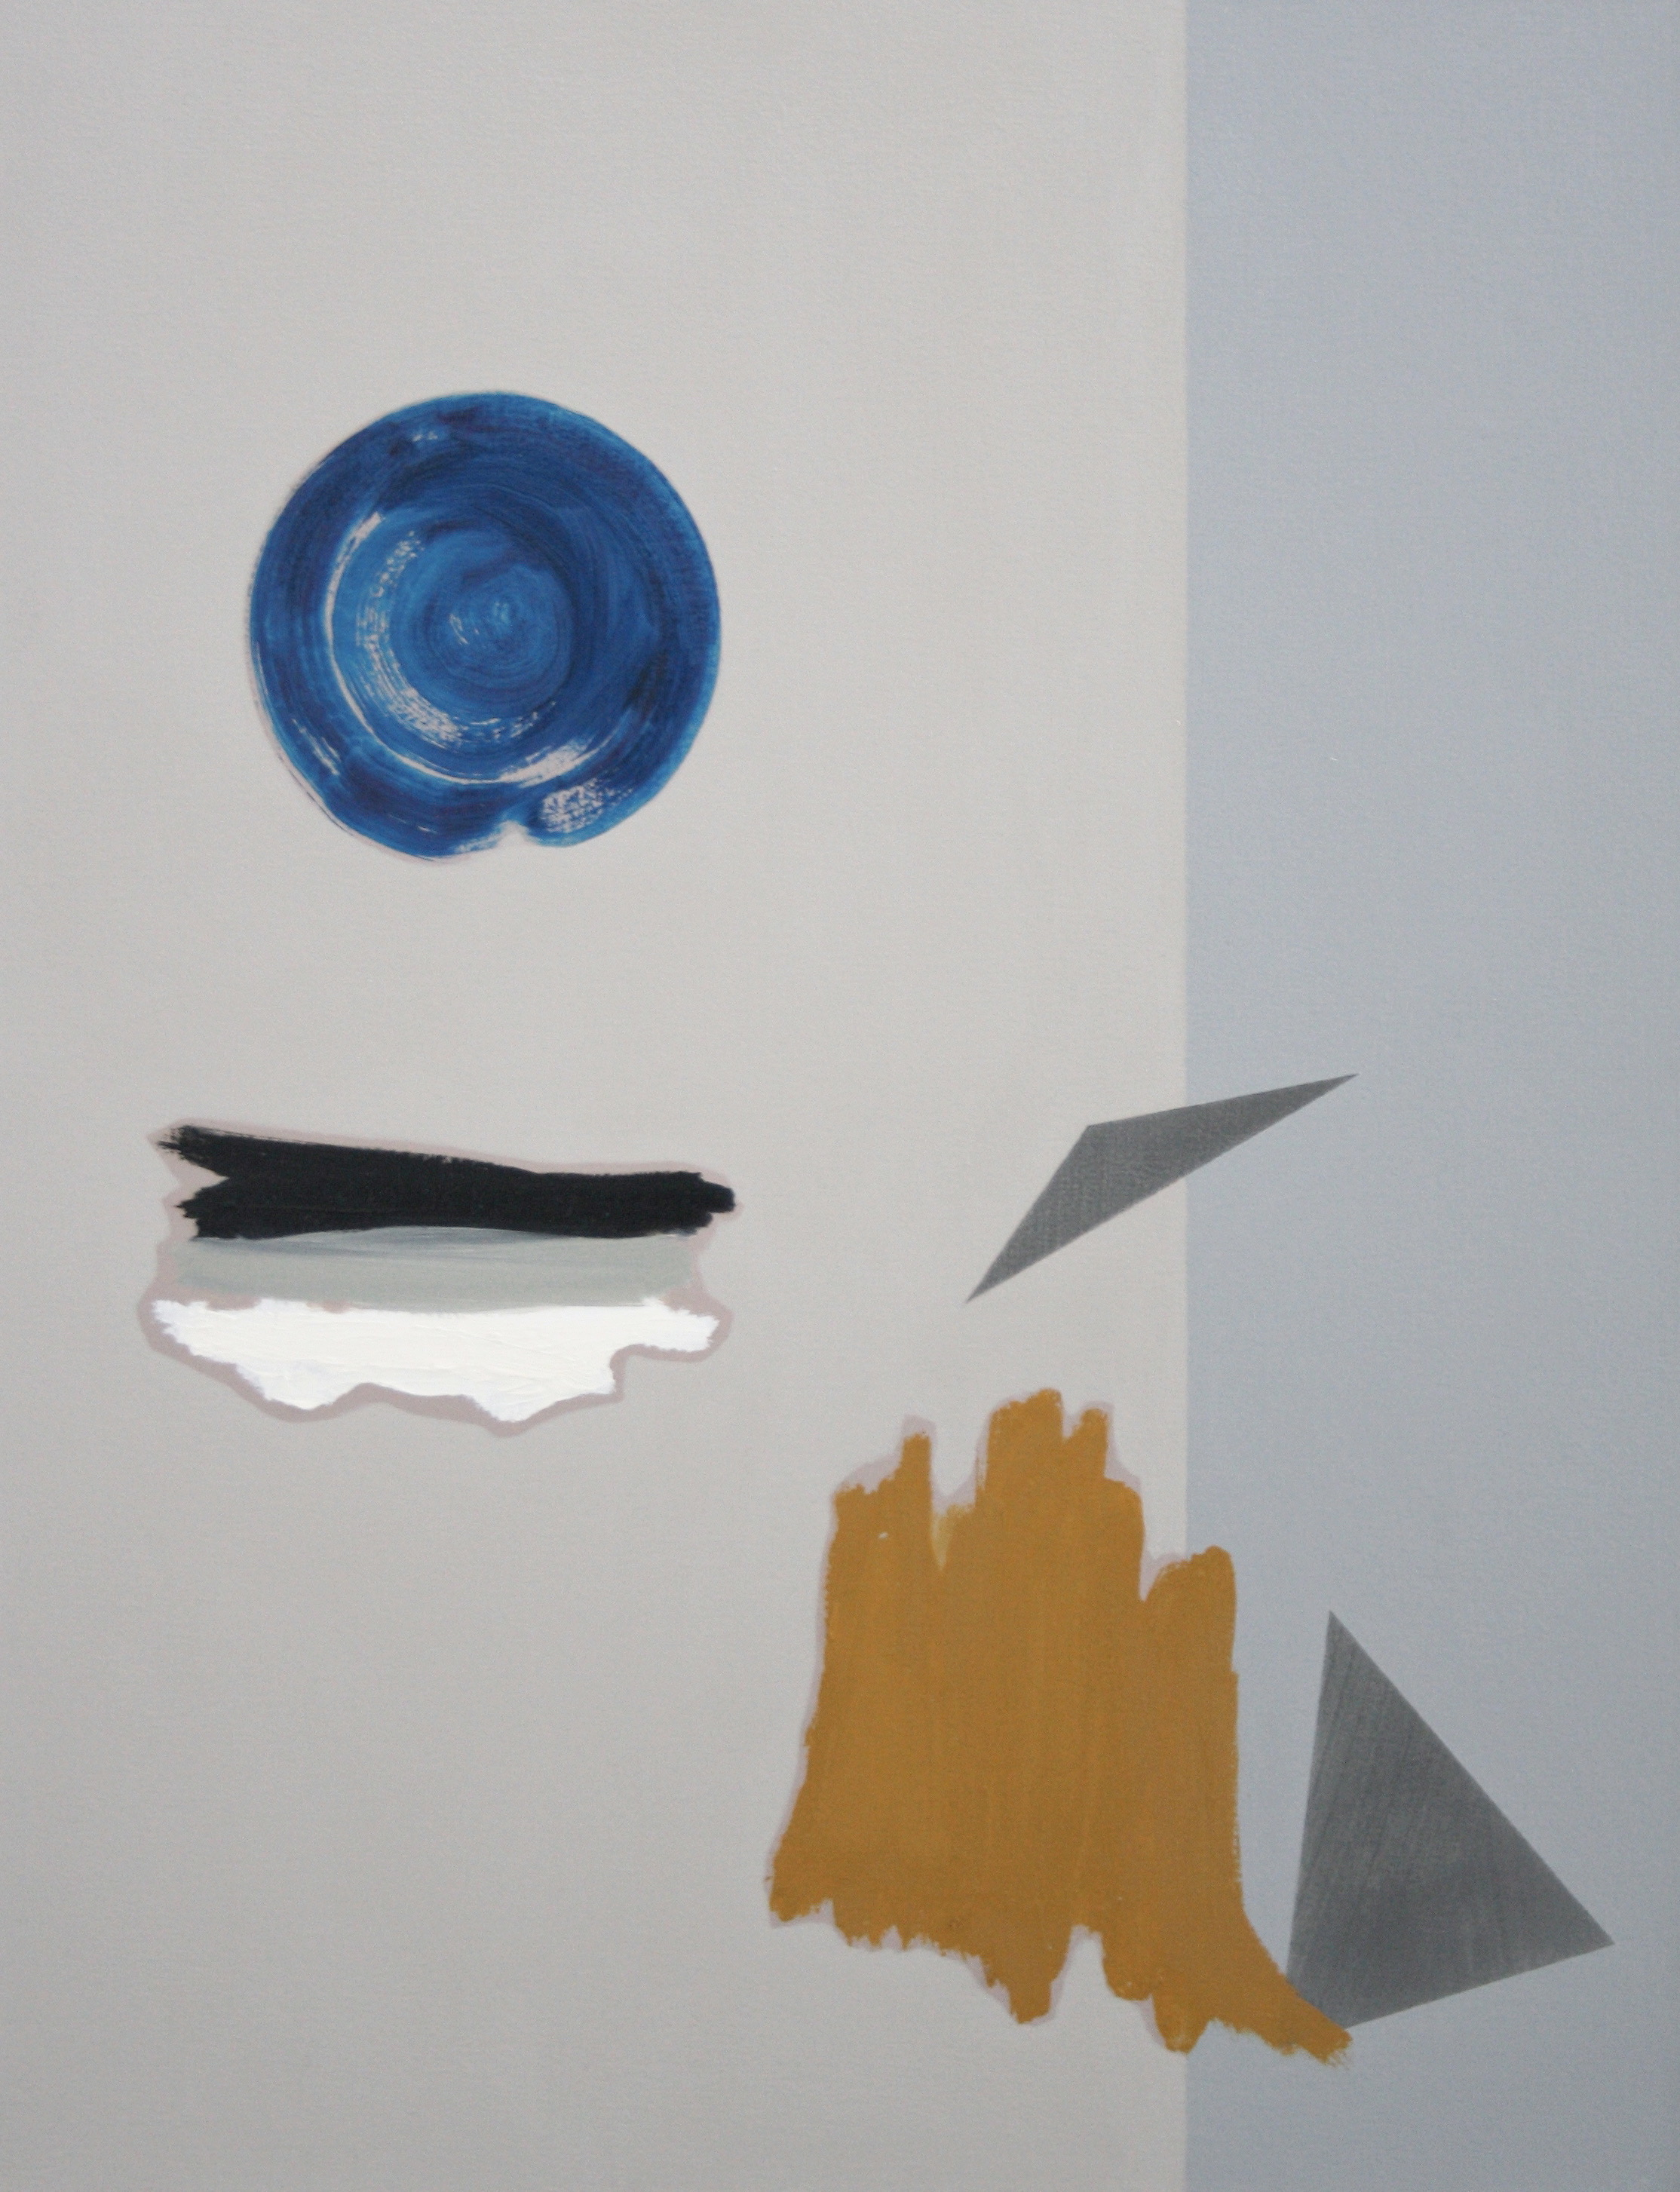 Degrees of Separation 6, 2010, oil, acrylic and graphite on canvas, 56 x 43 cm